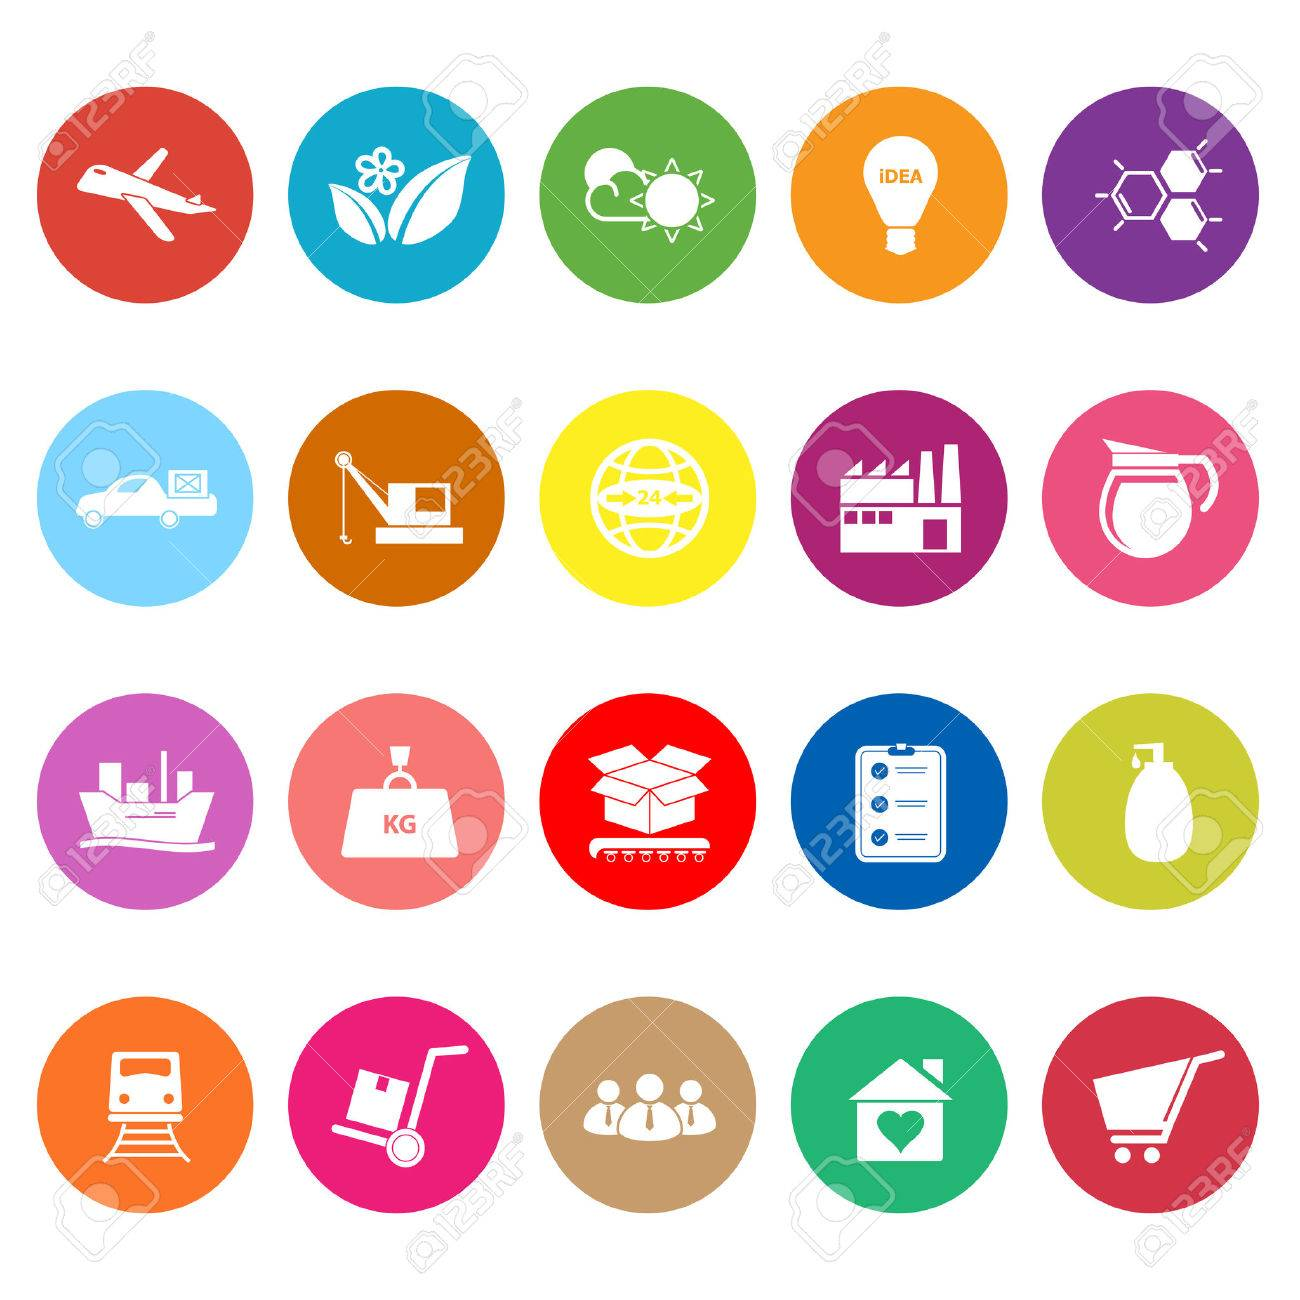 Supply chain and logistic flat icons on white background, stock vector Standard-Bild - 31428216